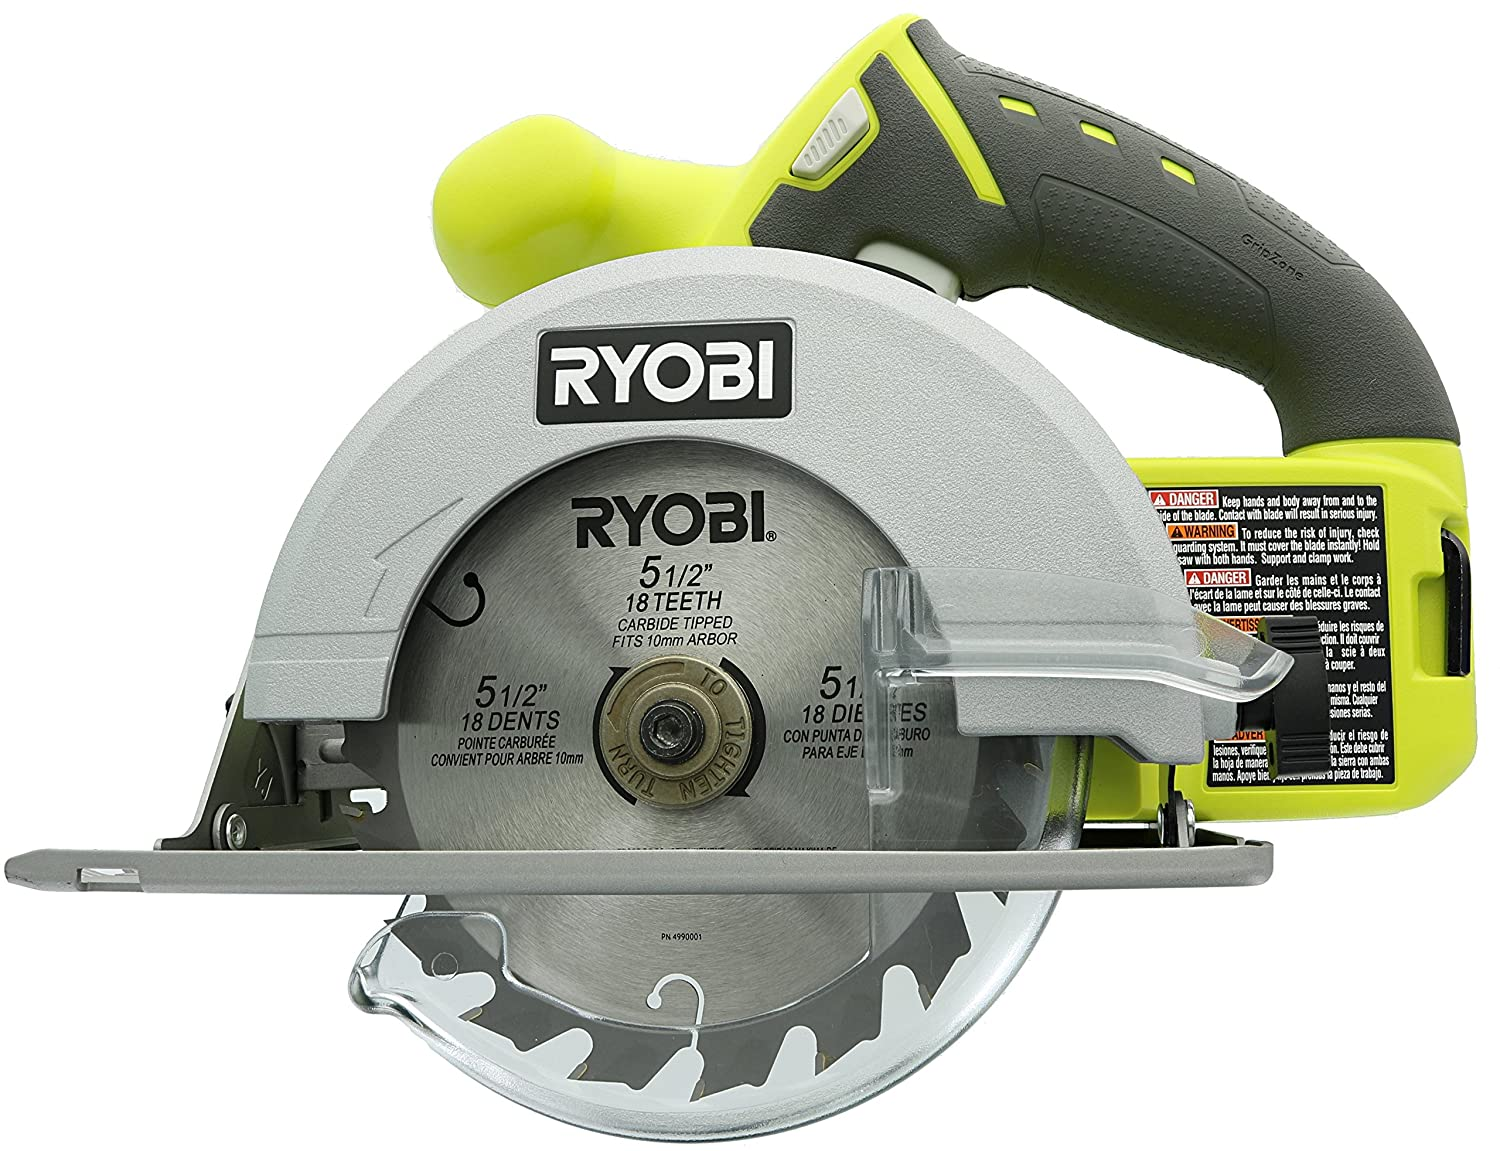 Ryobi p504g one 18 v lithium ion cordless 5 12 inch circular saw w ryobi p504g one 18 v lithium ion cordless 5 12 inch circular saw w carbide tip blade battery not included power tool only power circular saws keyboard keysfo Choice Image